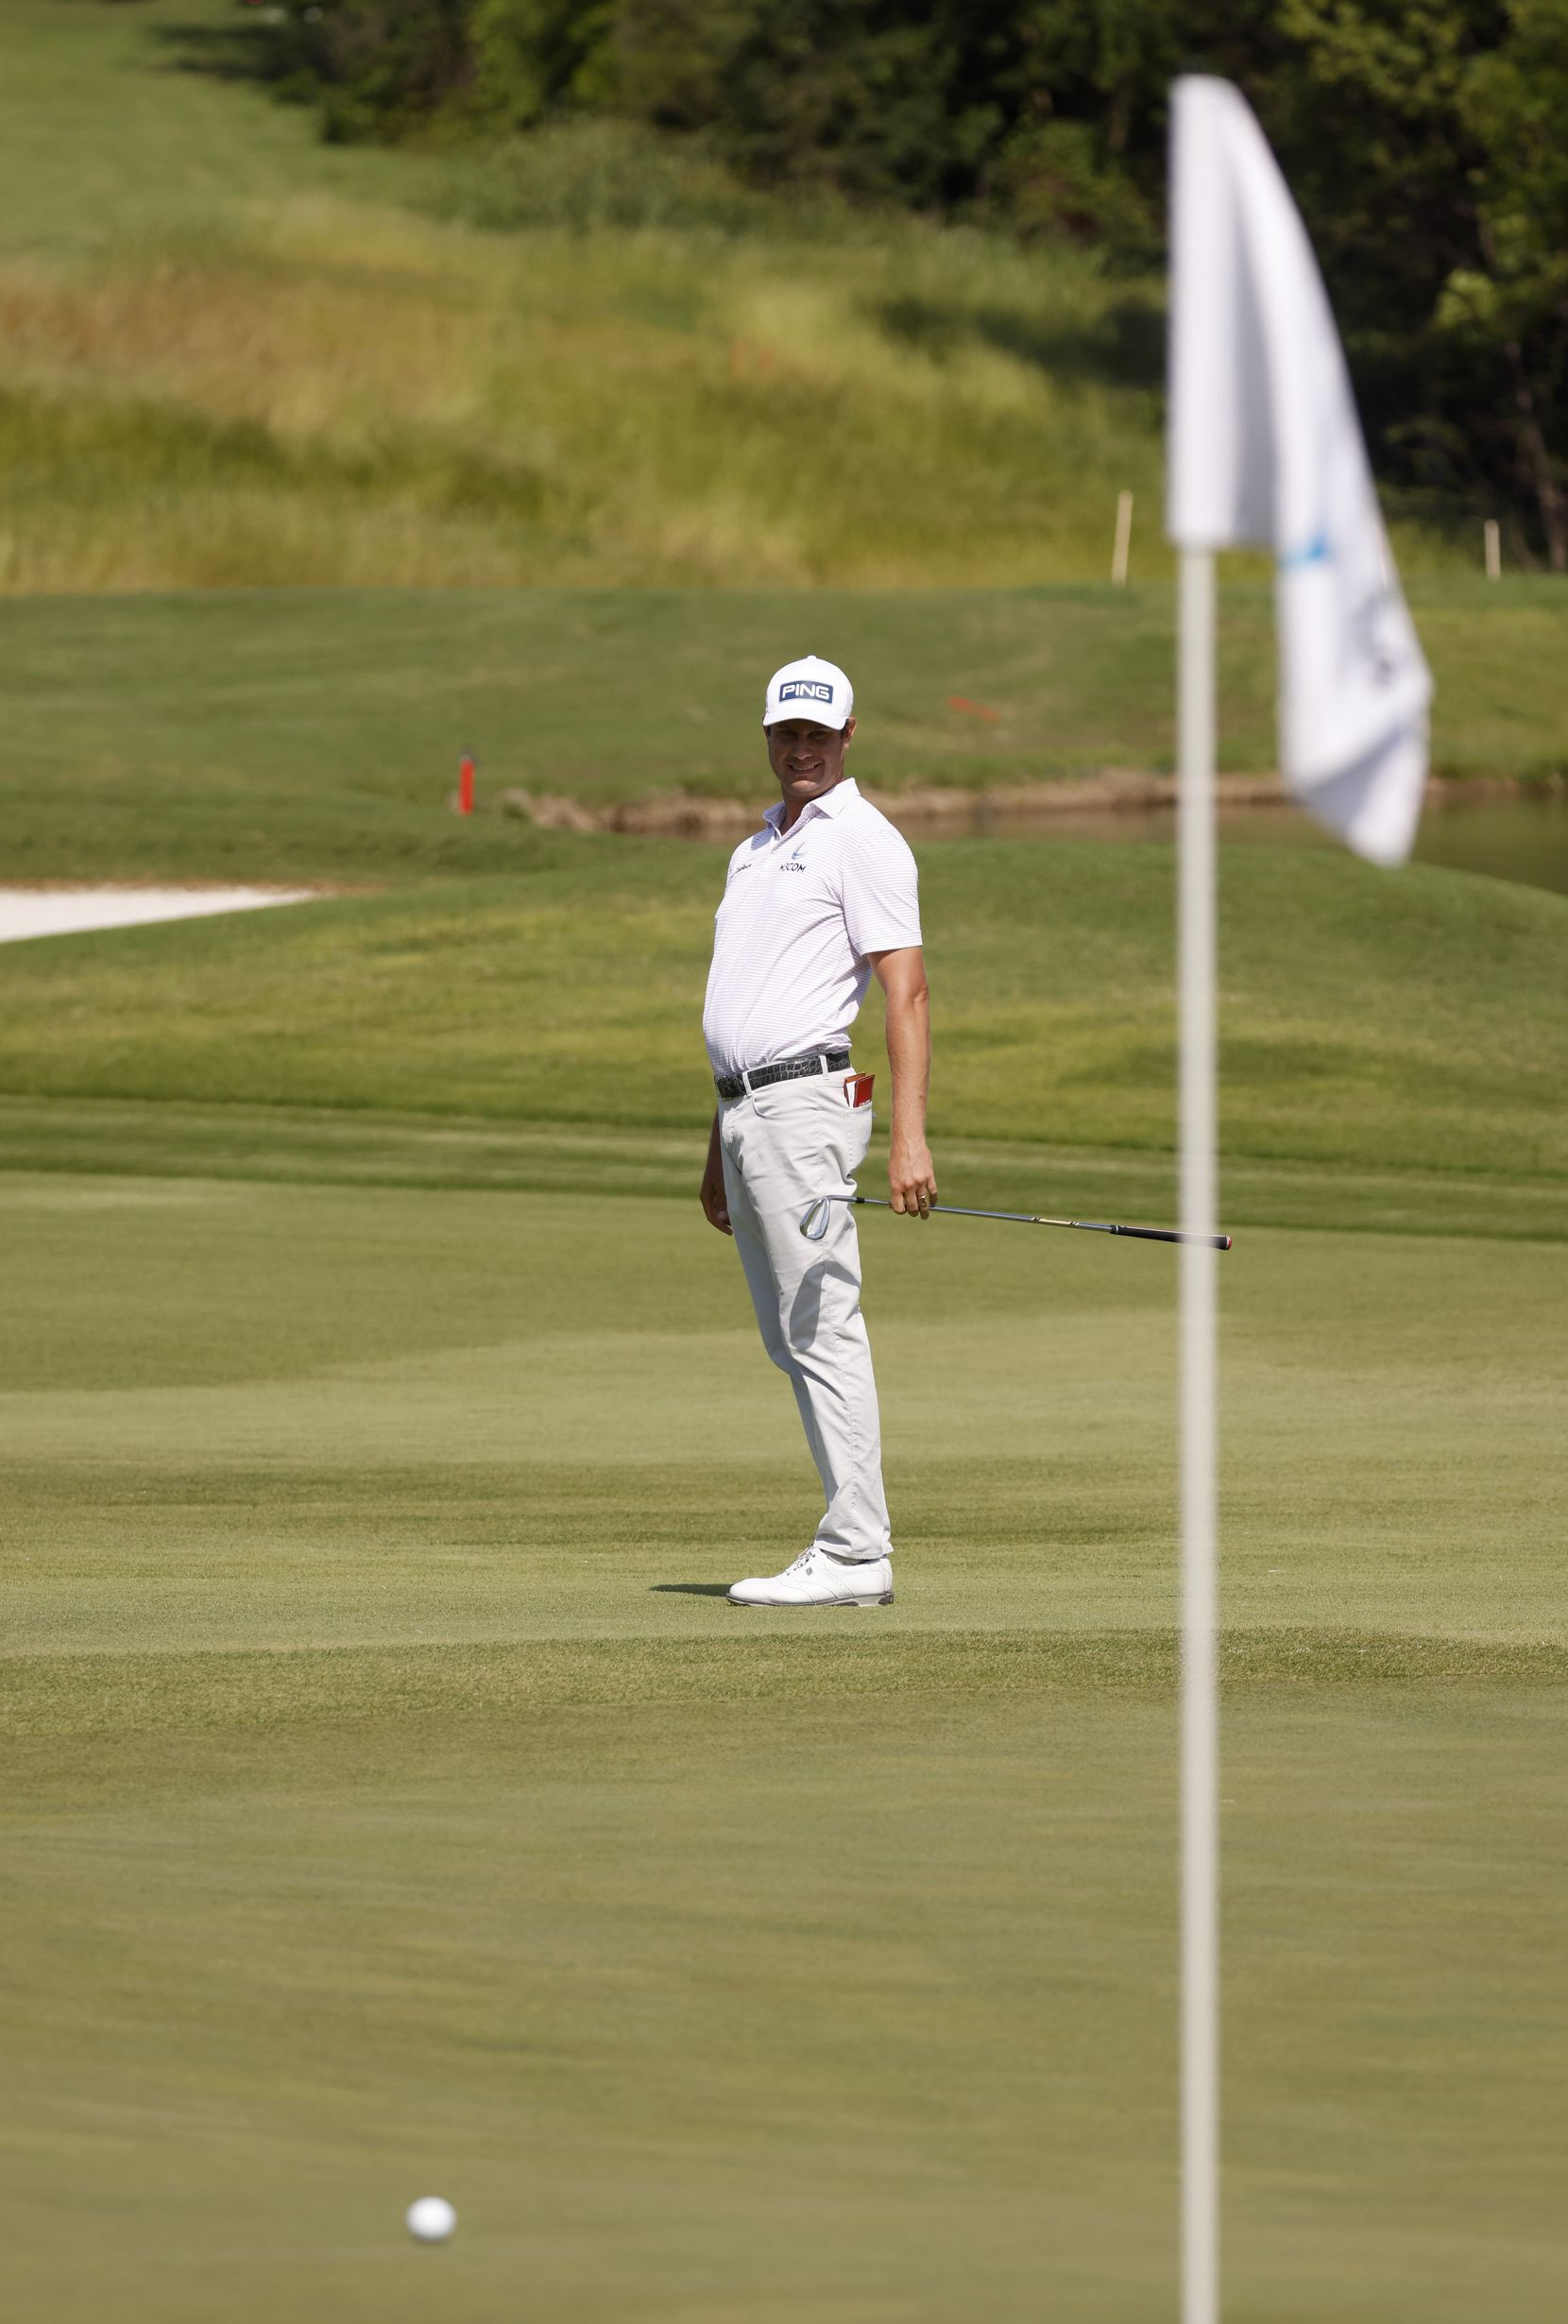 Harris English watches his ball on the 14th hole during round 3 of the AT&T Byron Nelson  at TPC Craig Ranch on Saturday, May 15, 2021 in McKinney, Texas. (Vernon Bryant/The Dallas Morning News)